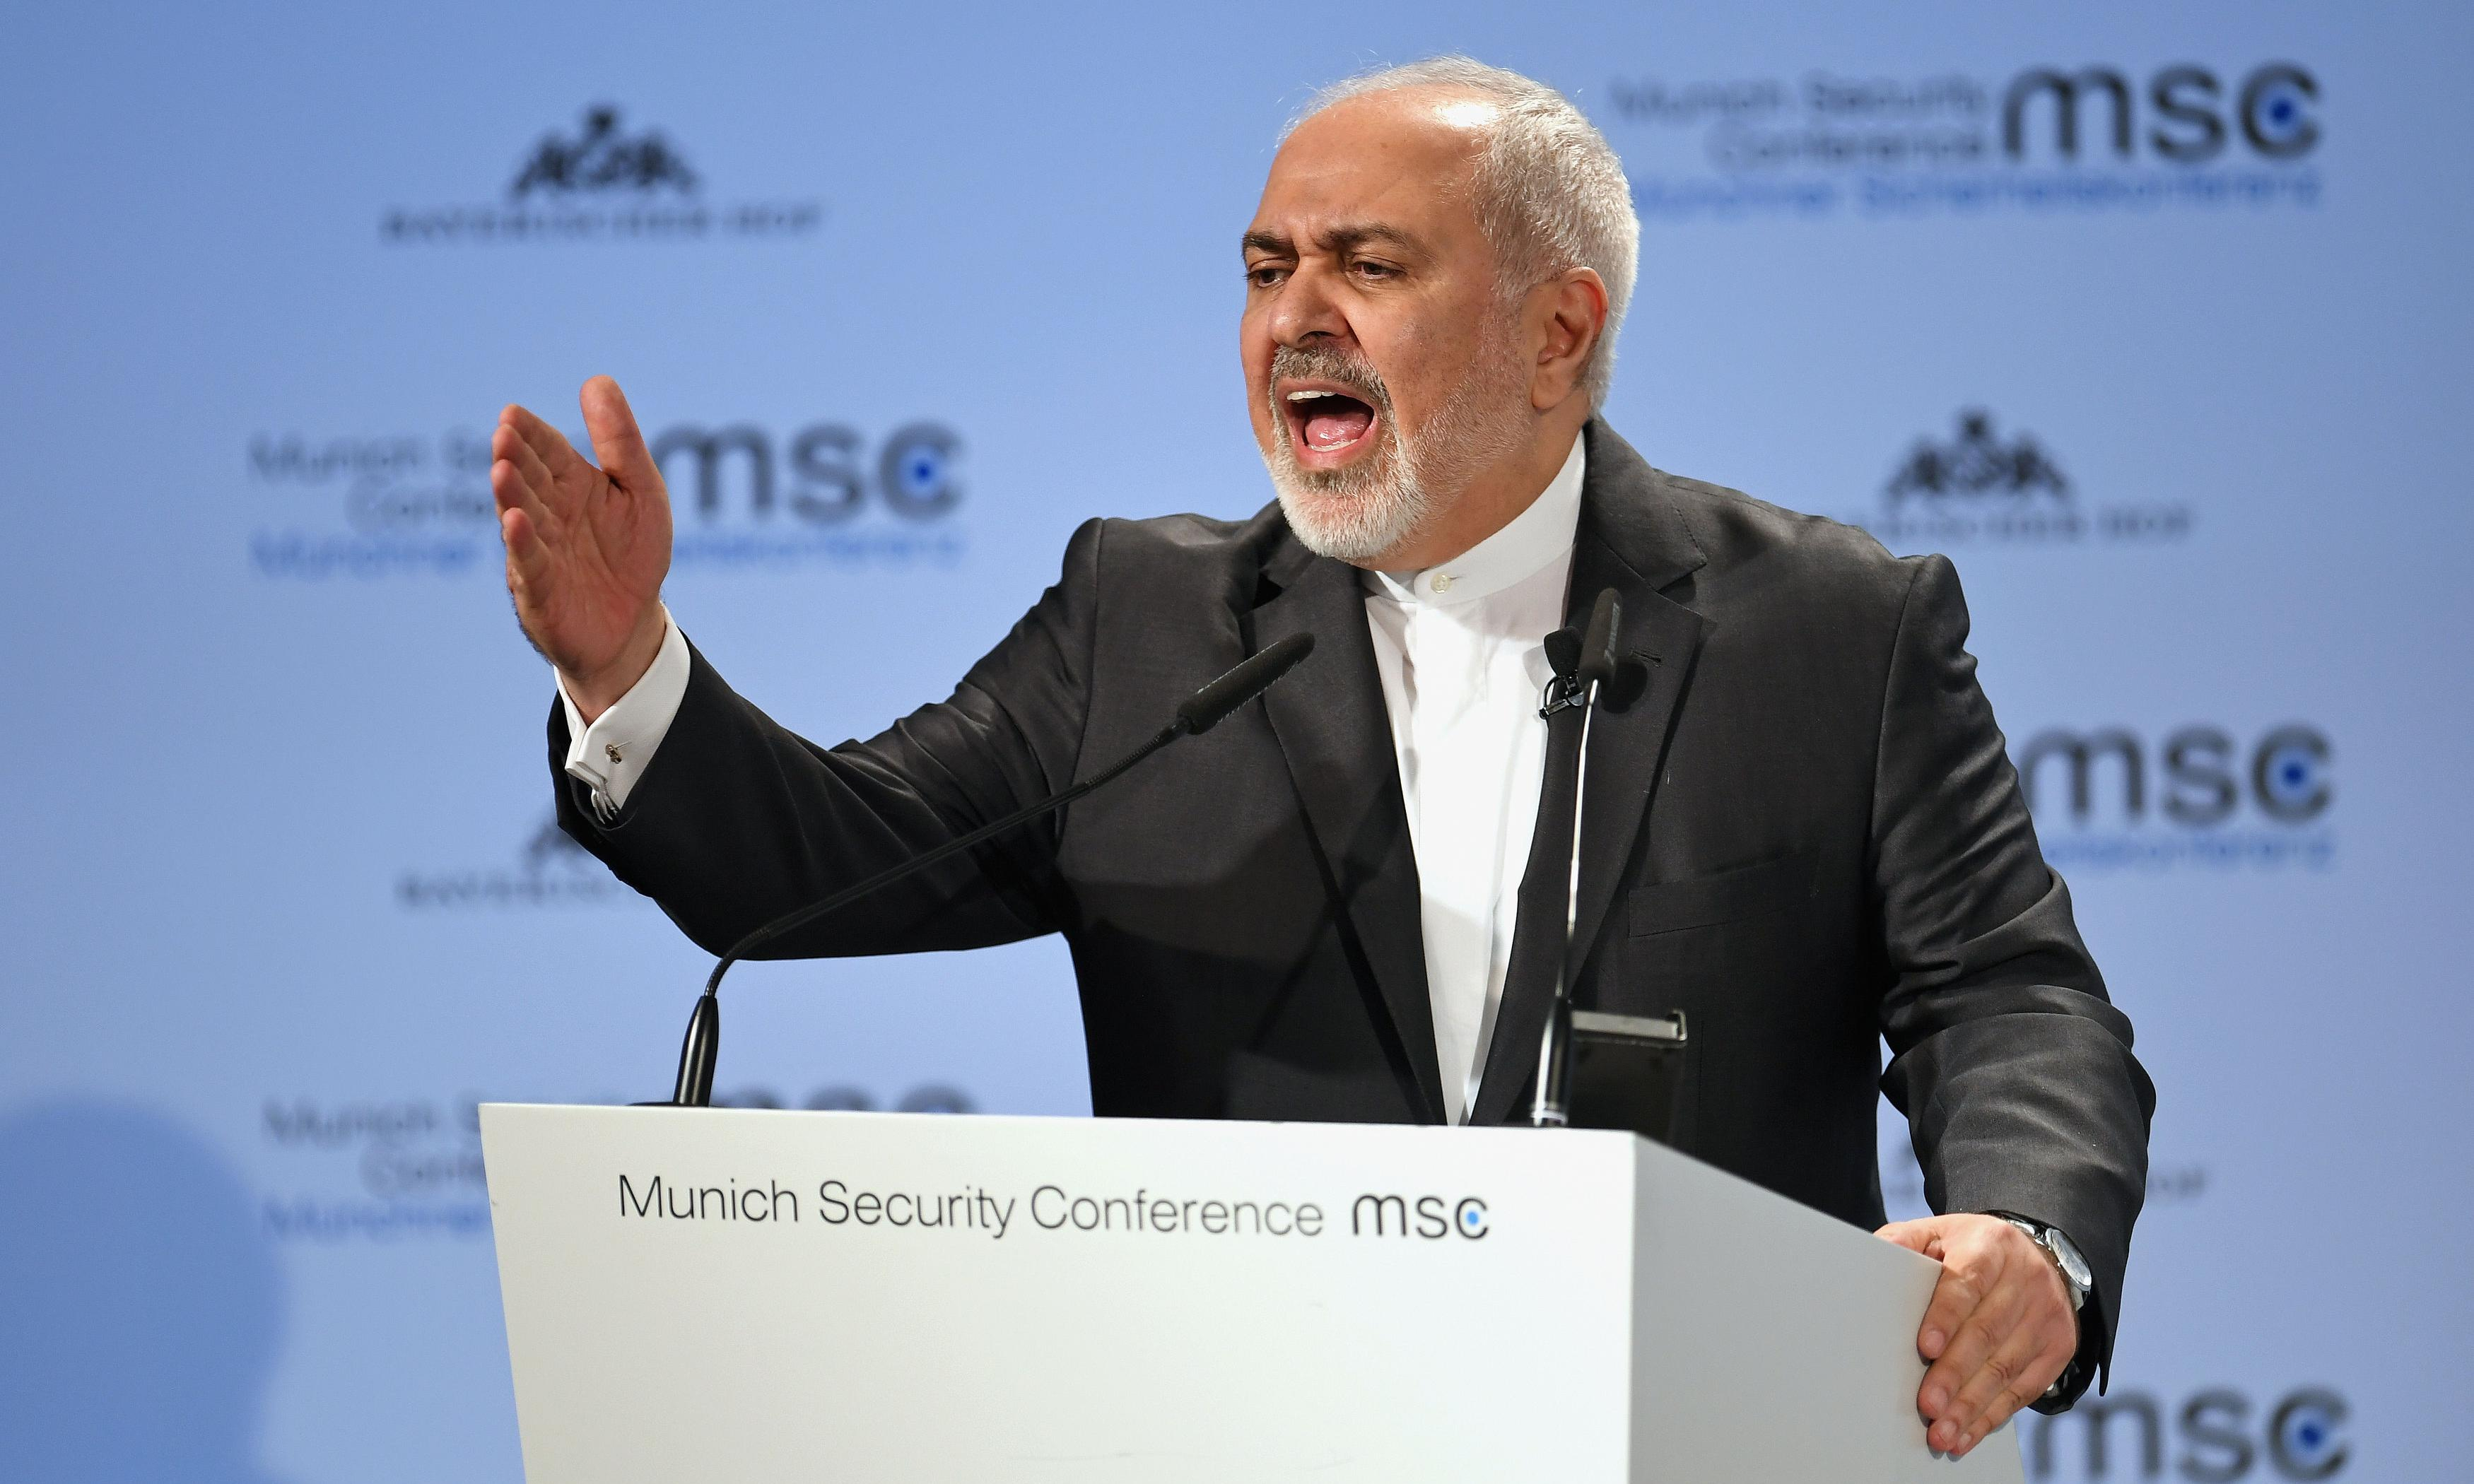 Iran's foreign minister says public are losing faith in nuclear deal